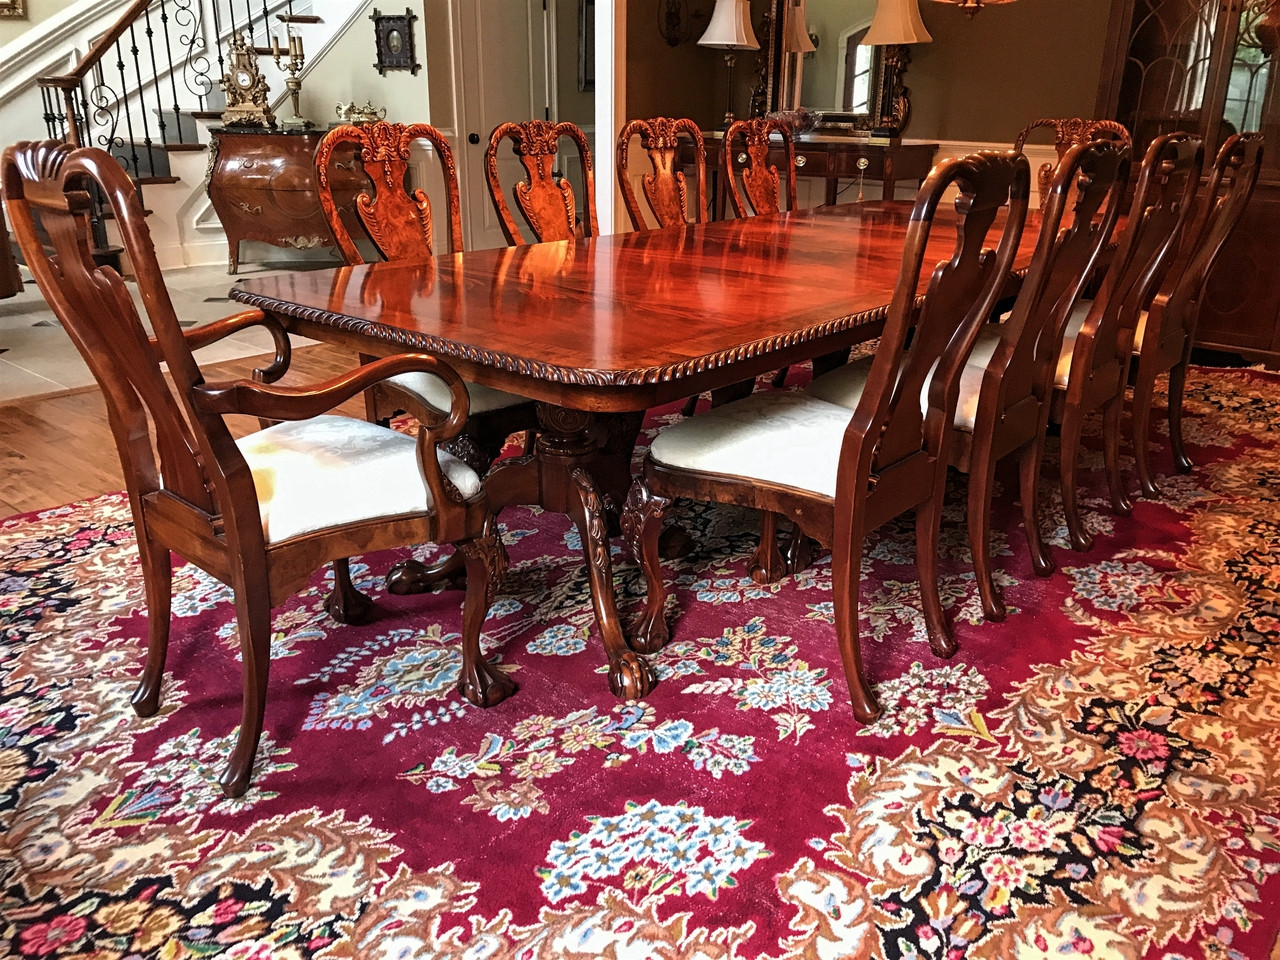 10 chair dining table set pink bean bag chairs sold out georgian style flame mahogany ball claw